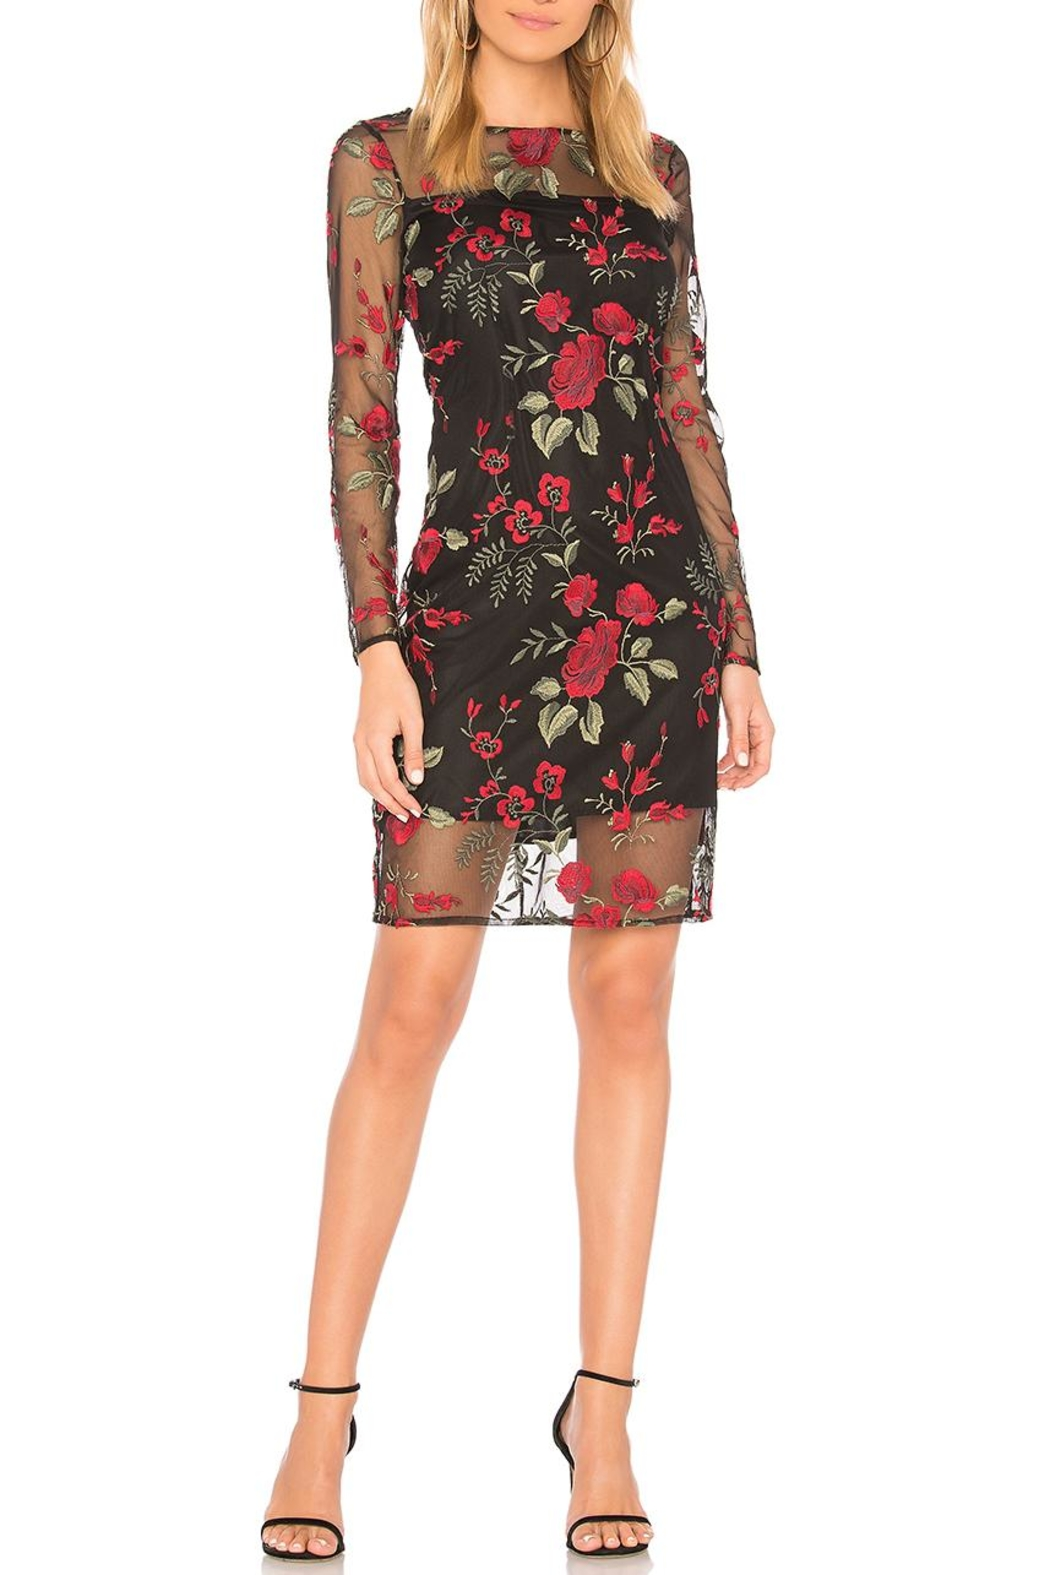 Cupcakes & Cashmere Embroidered Mesh Dress - Main Image